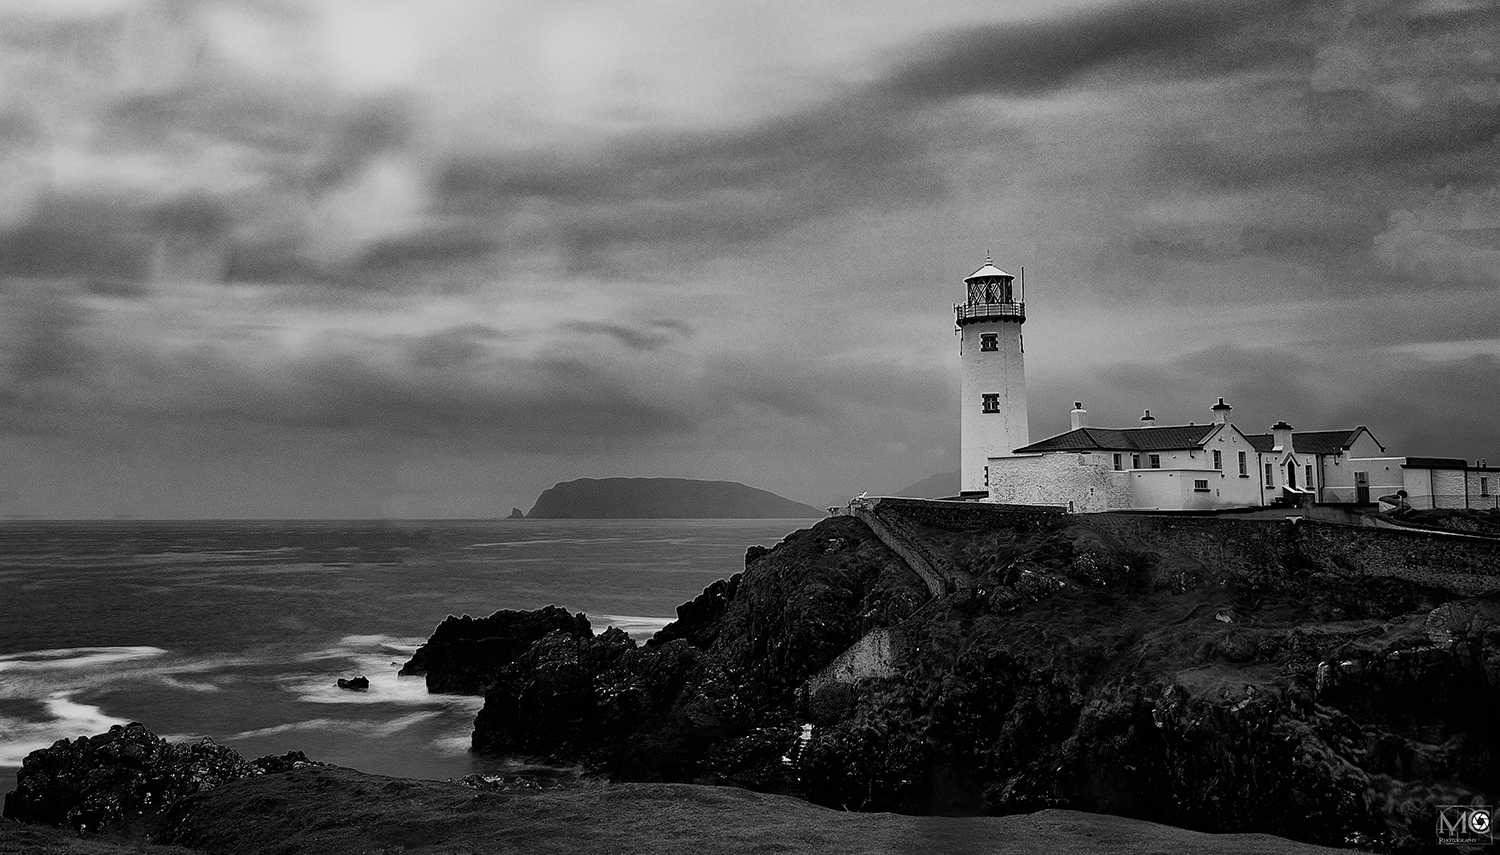 Fanad Lighthouse, Letterkenny, Co. Donegal, Ireland